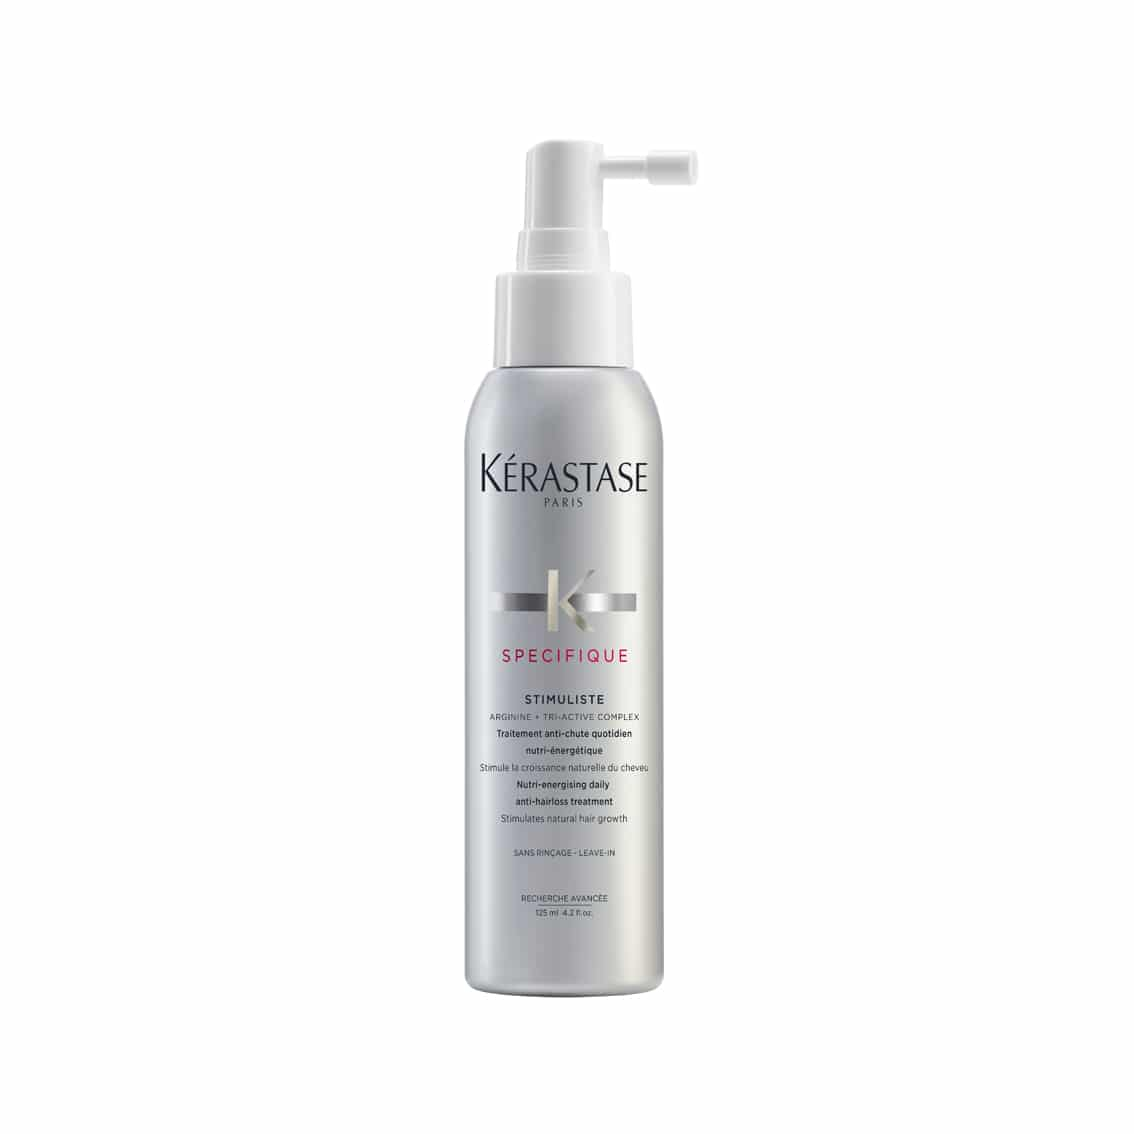 Kérastase Stimuliste Spray 125ml anti-caída | TuChampú